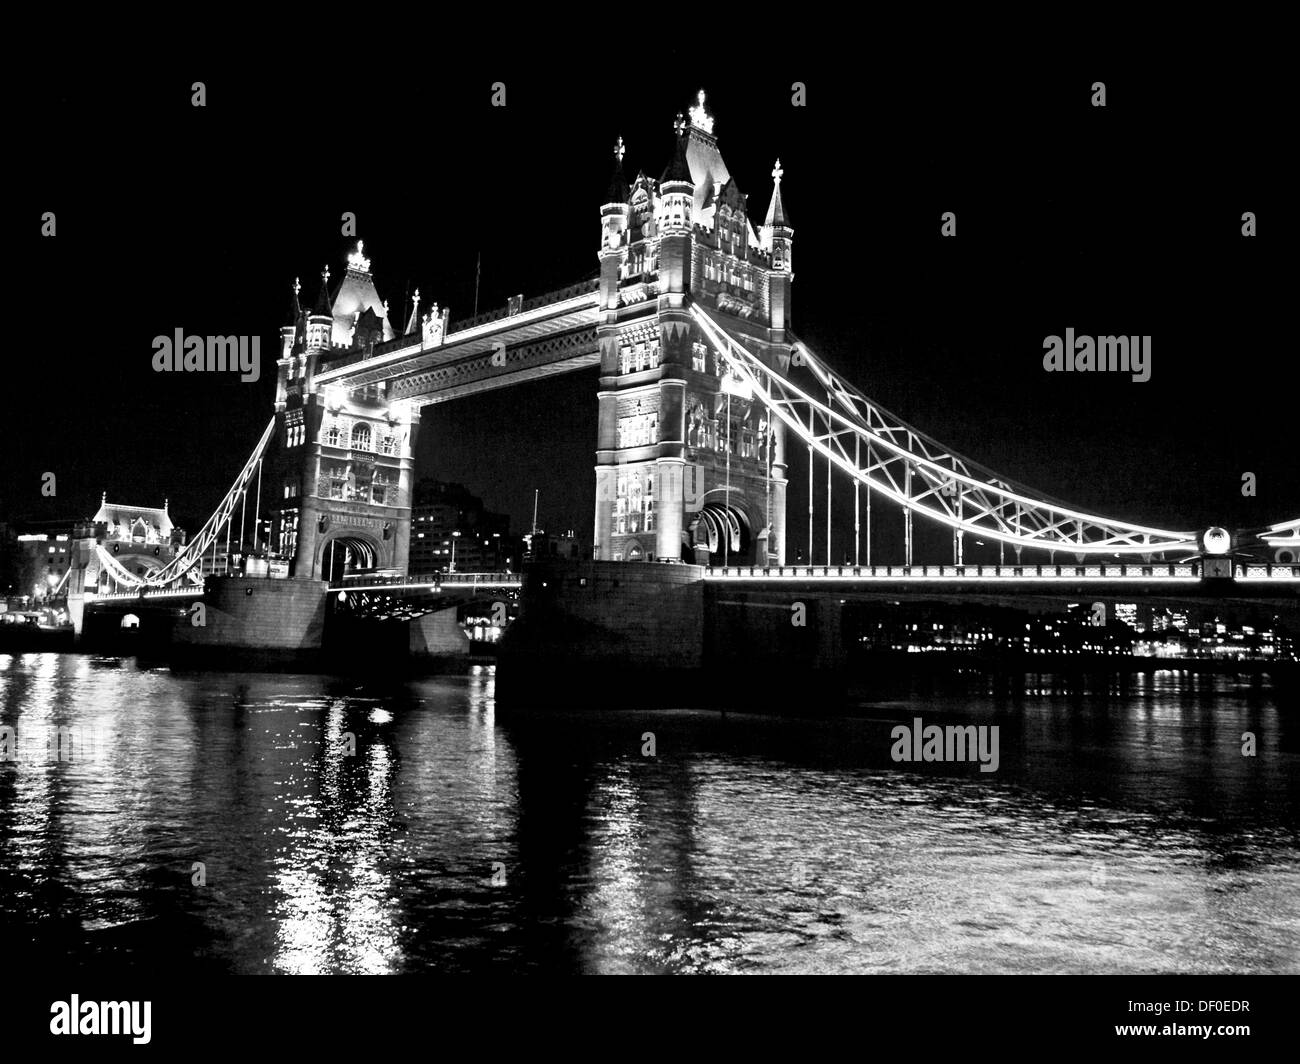 View of the Tower Bridge at night showing the River Thames, London, England, United Kingdom - Stock Image